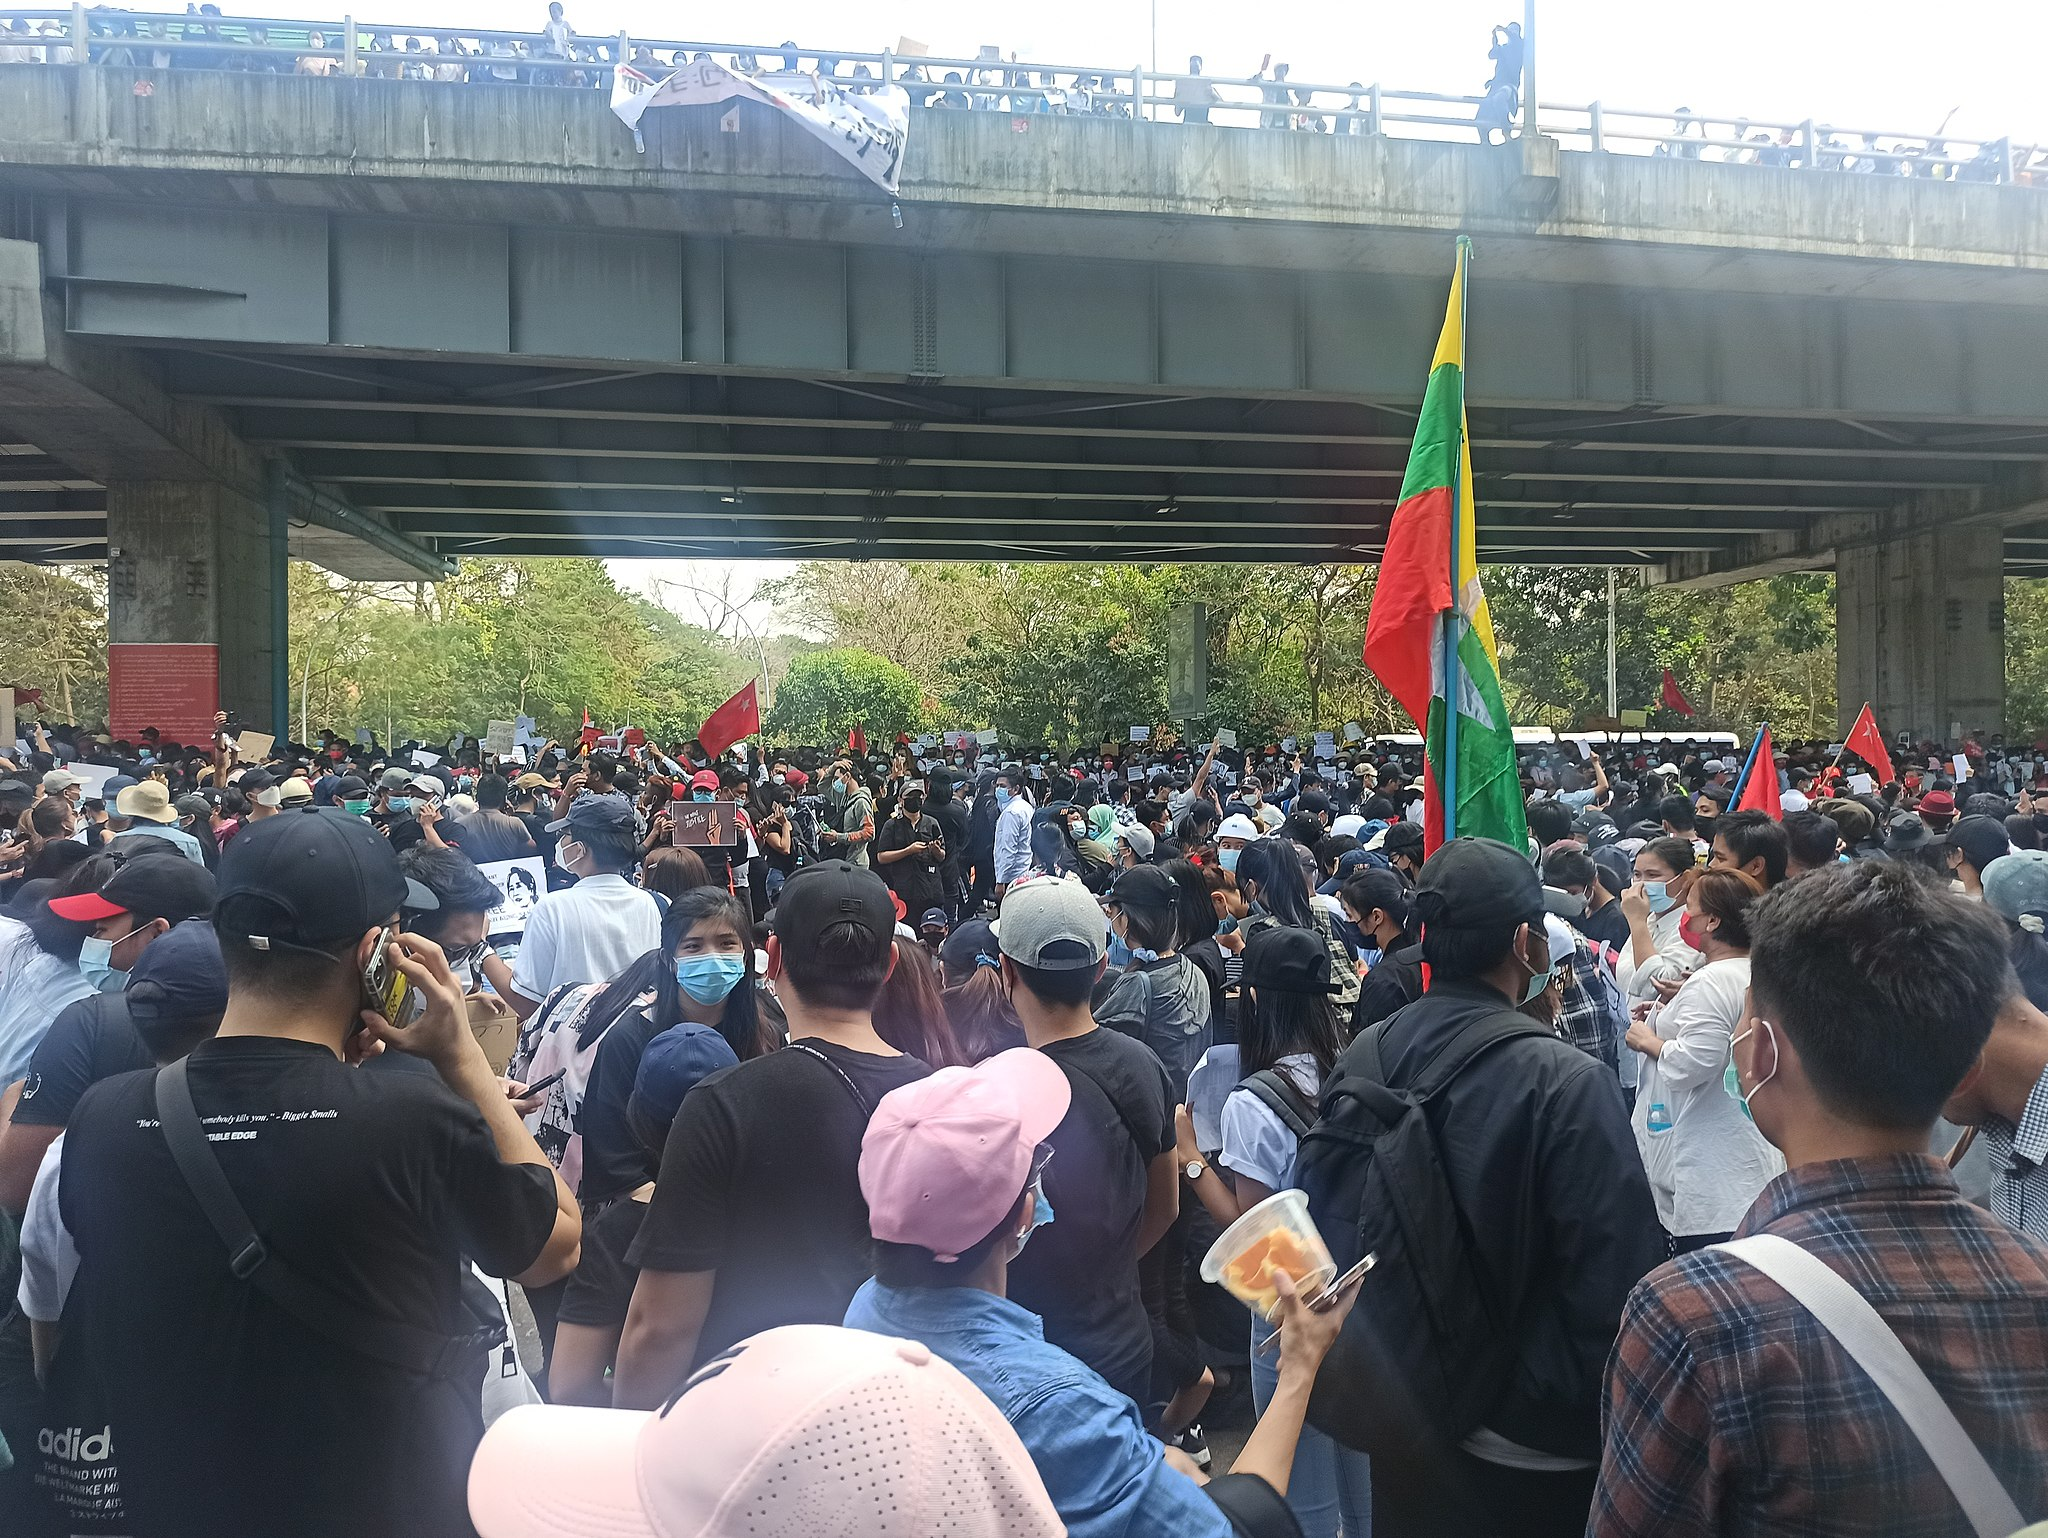 The header photo shows a protest in Yangon, Myanmar from February 2021. (သူထွန်း, CC BY-SA 4.0 <https://creativecommons.org/licenses/by-sa/4.0>, via Wikimedia Commons)